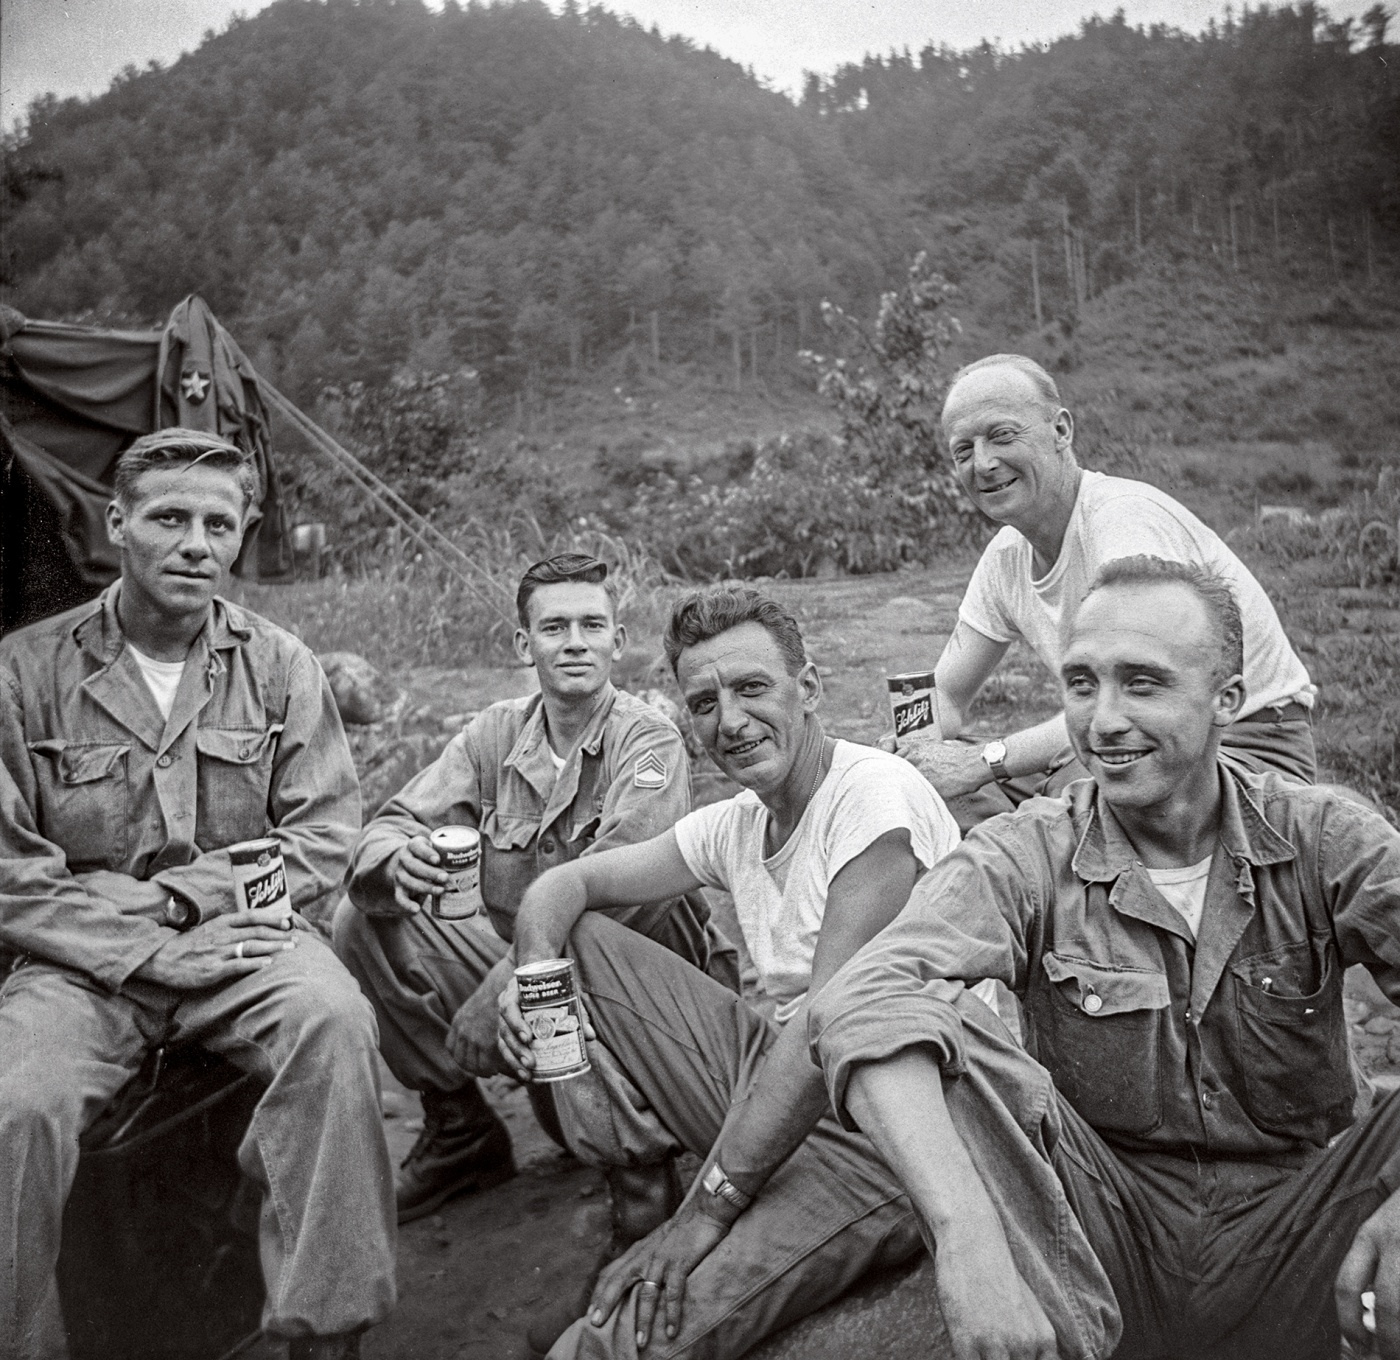 American soldiers in Korea